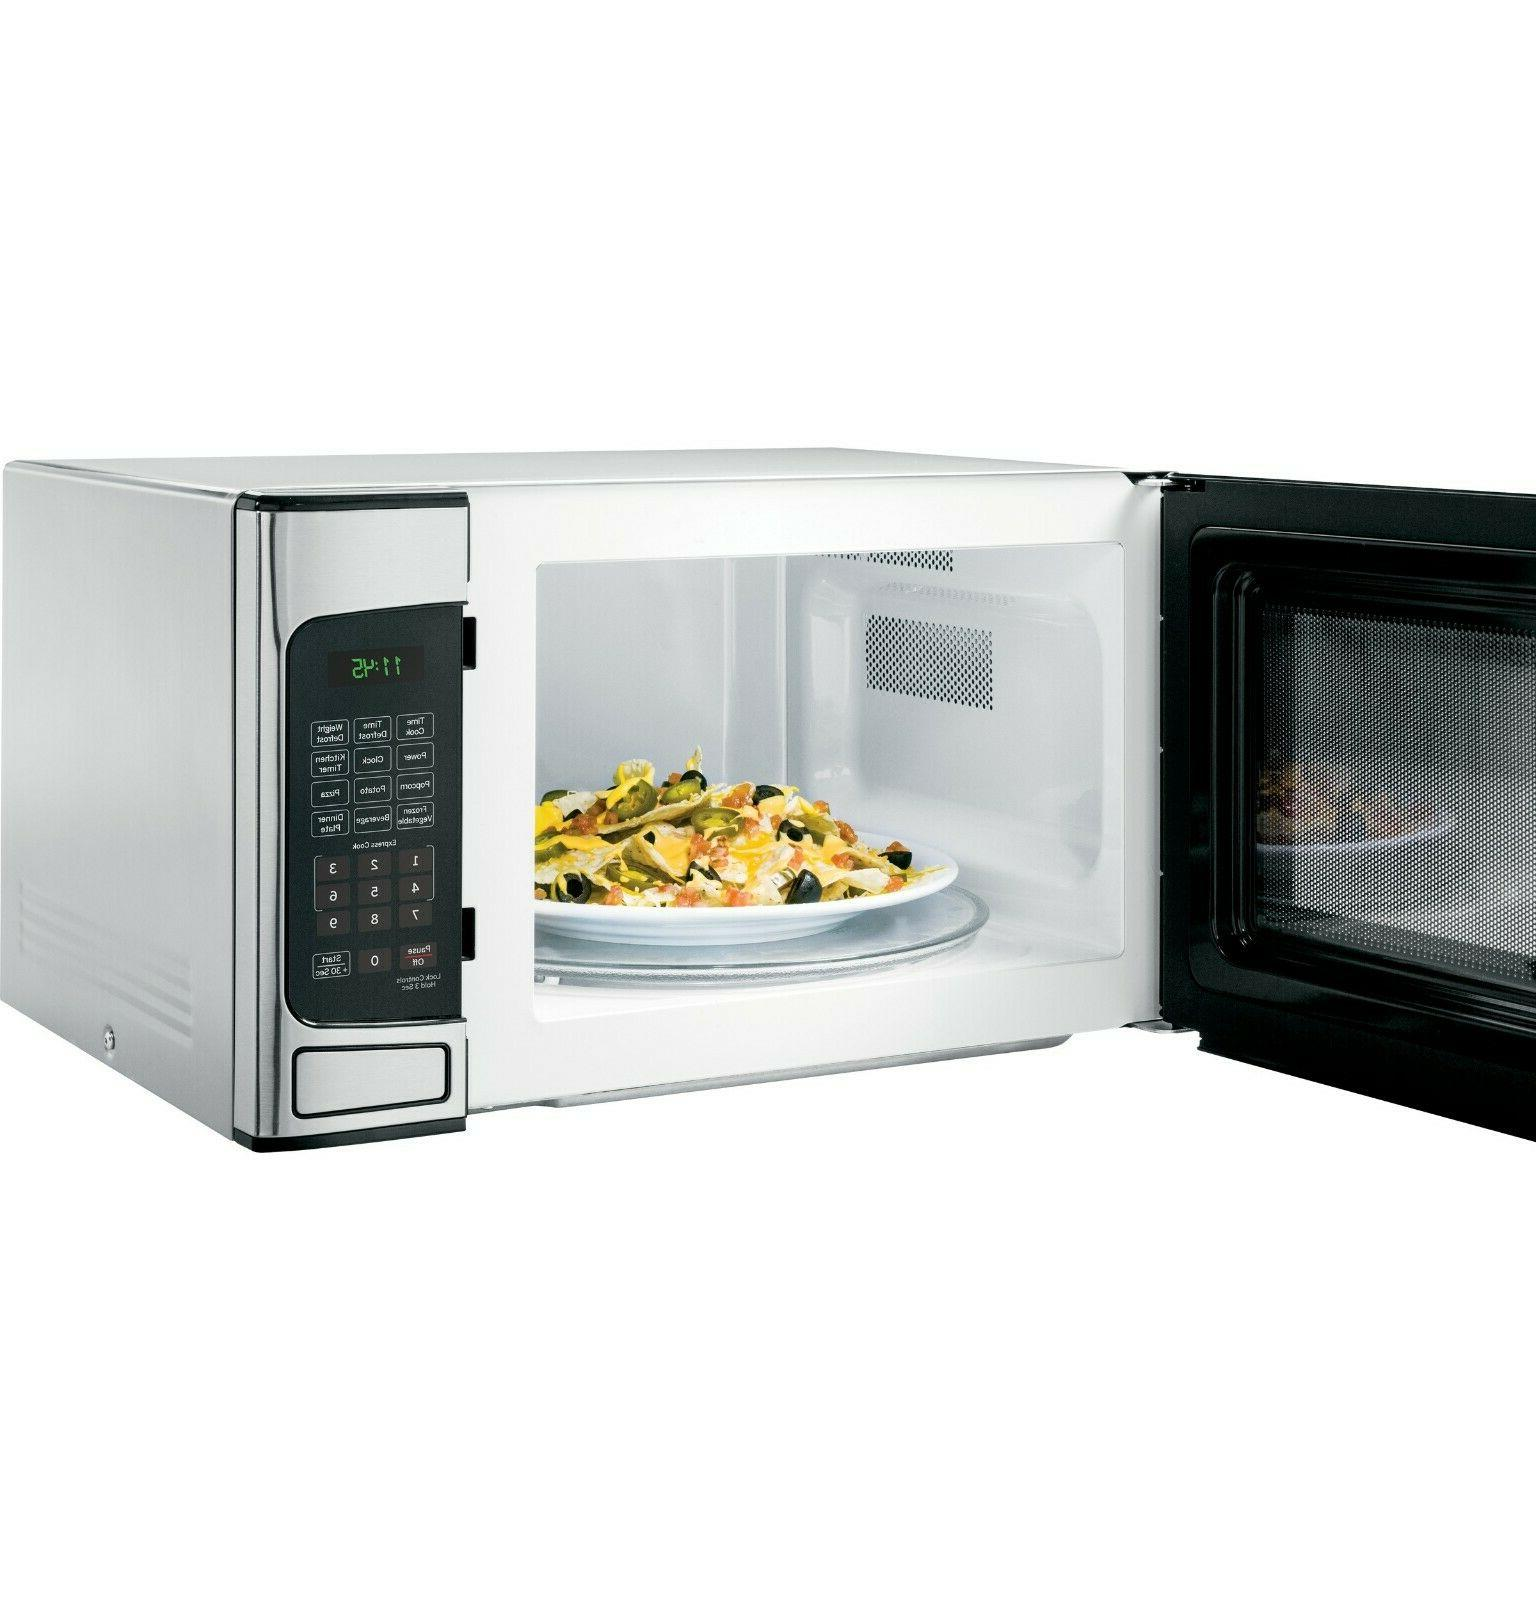 HE Microwave Oven Countertop Convection Best Progammable RV